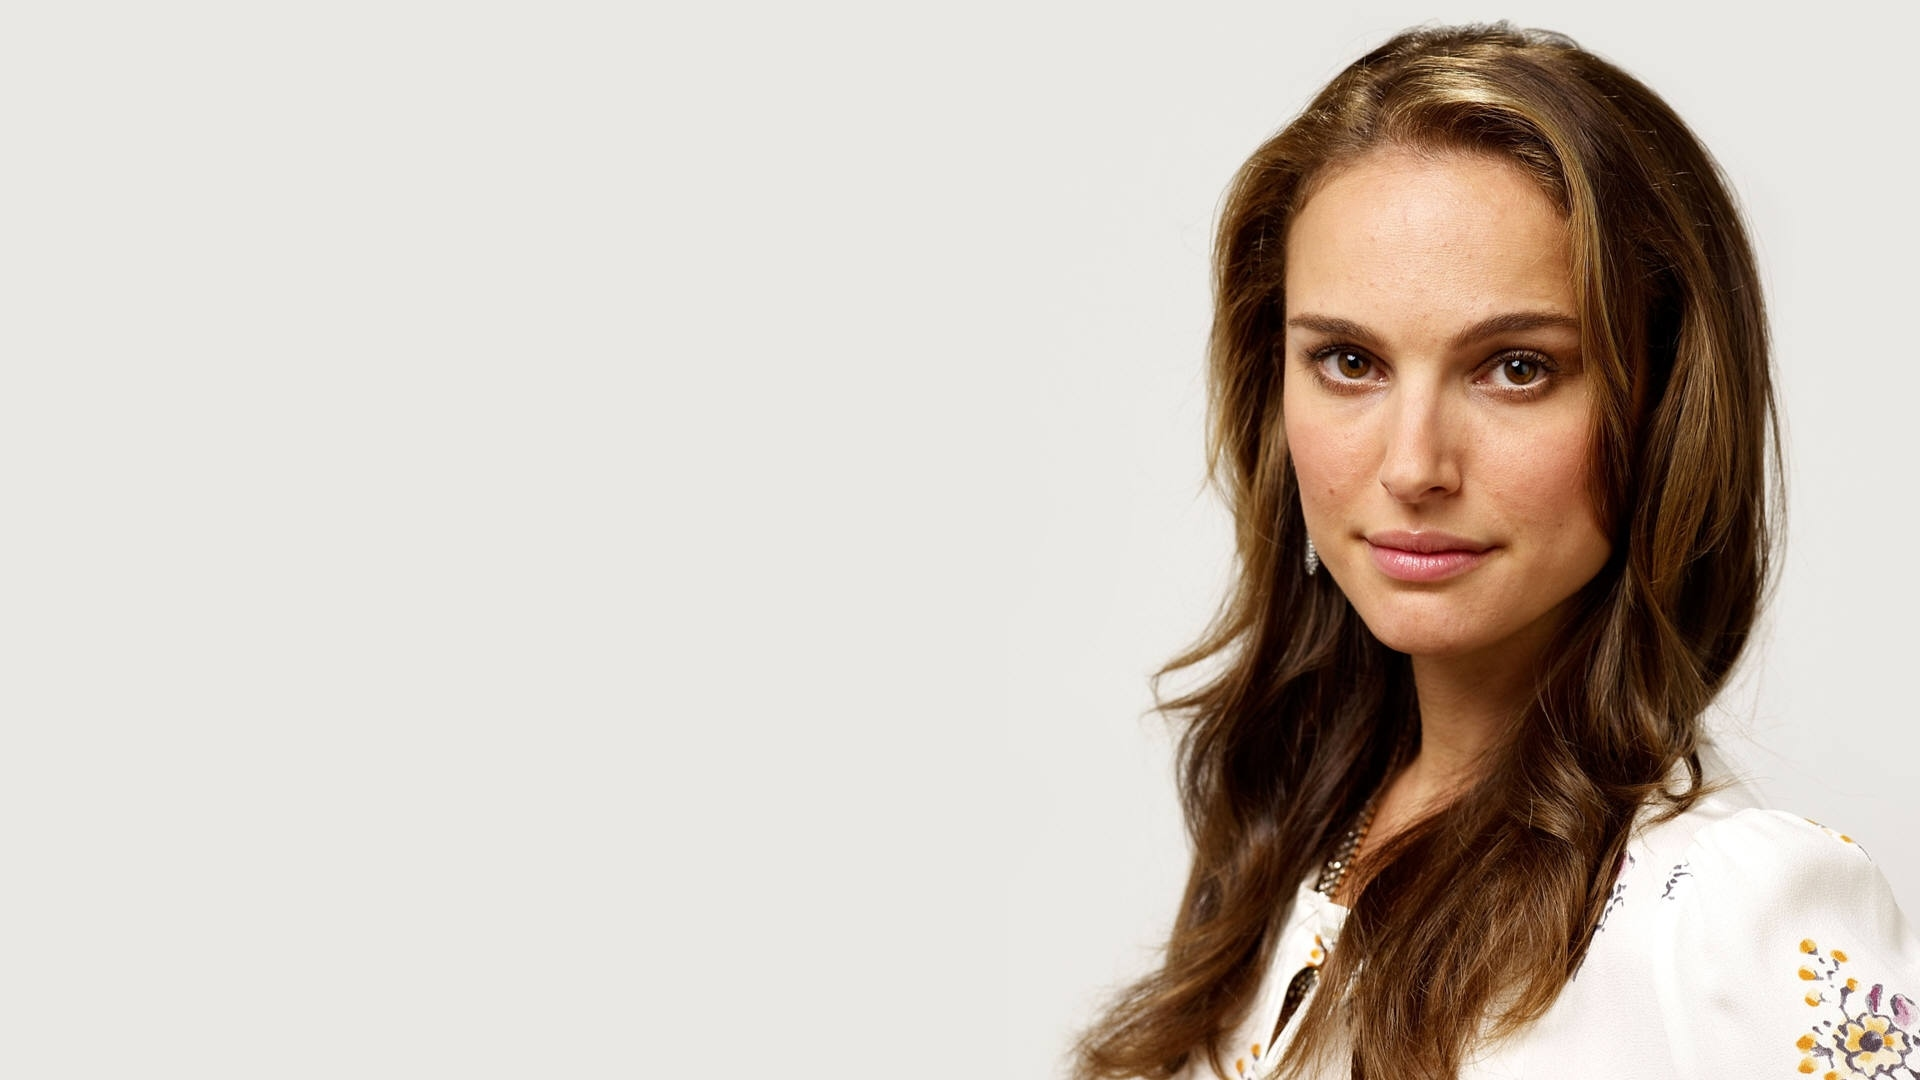 Natalie Portman Wallpapers